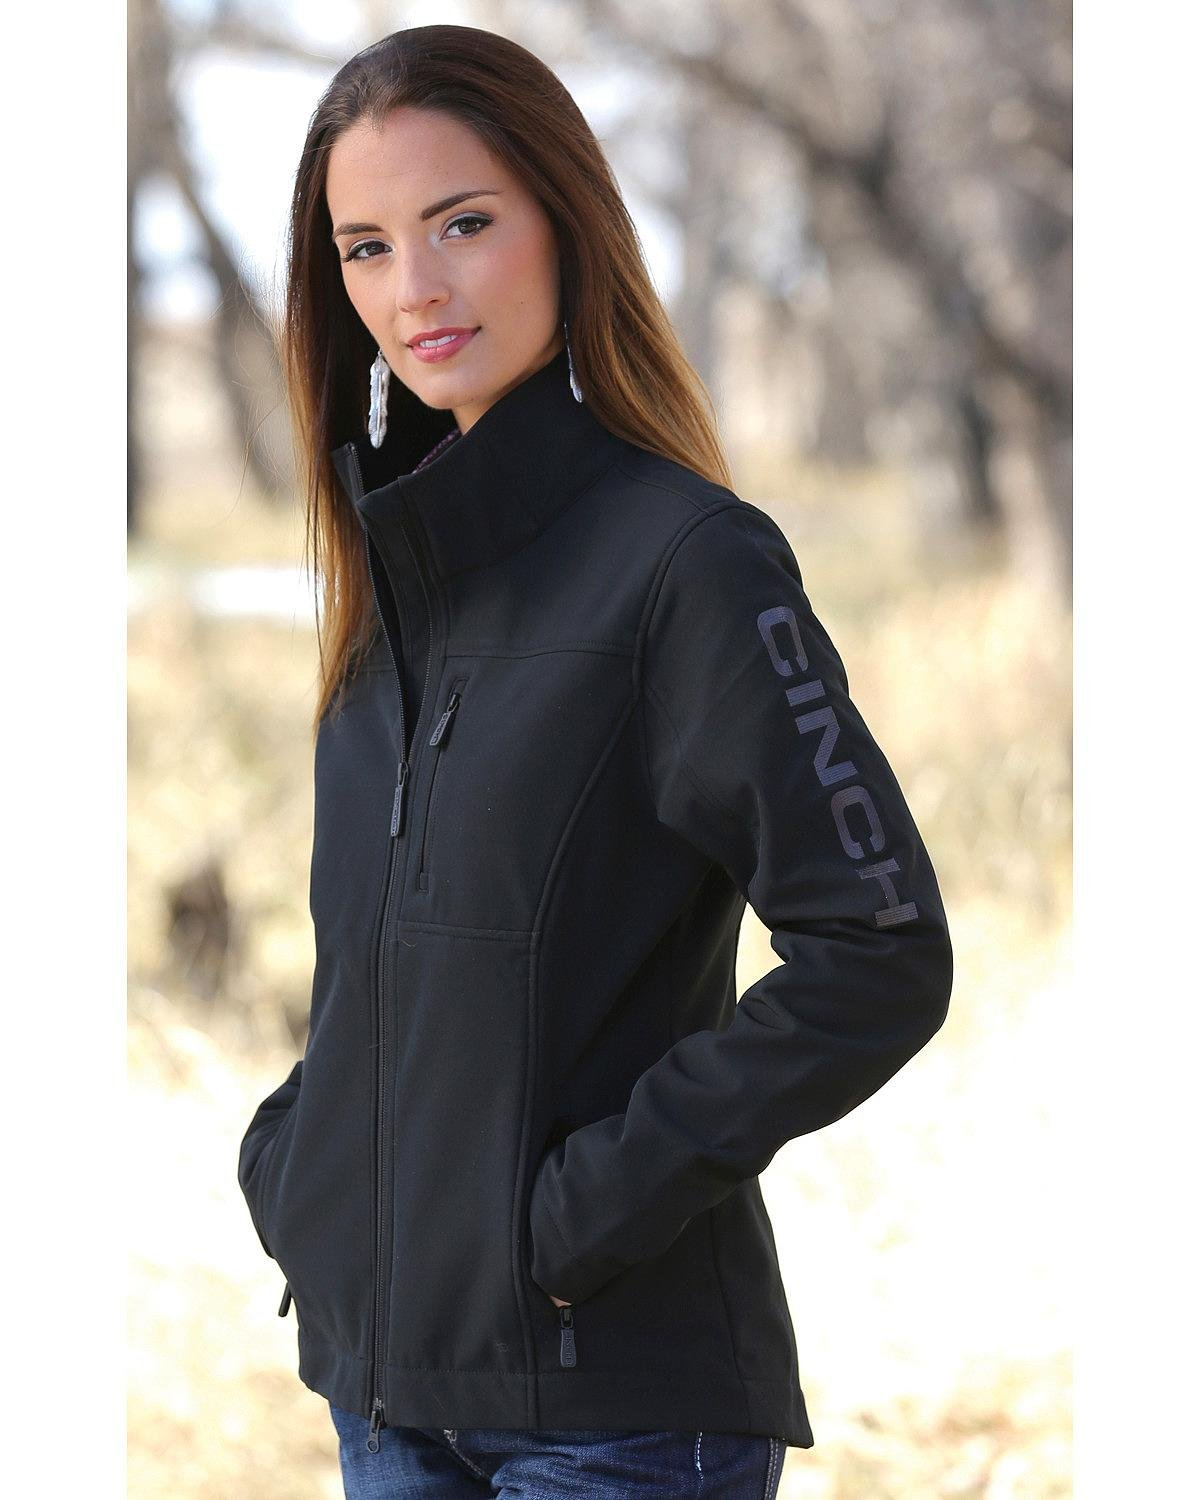 Cinch Women's Concealed Carry Bonded Jacket Black X-Large by Cinch